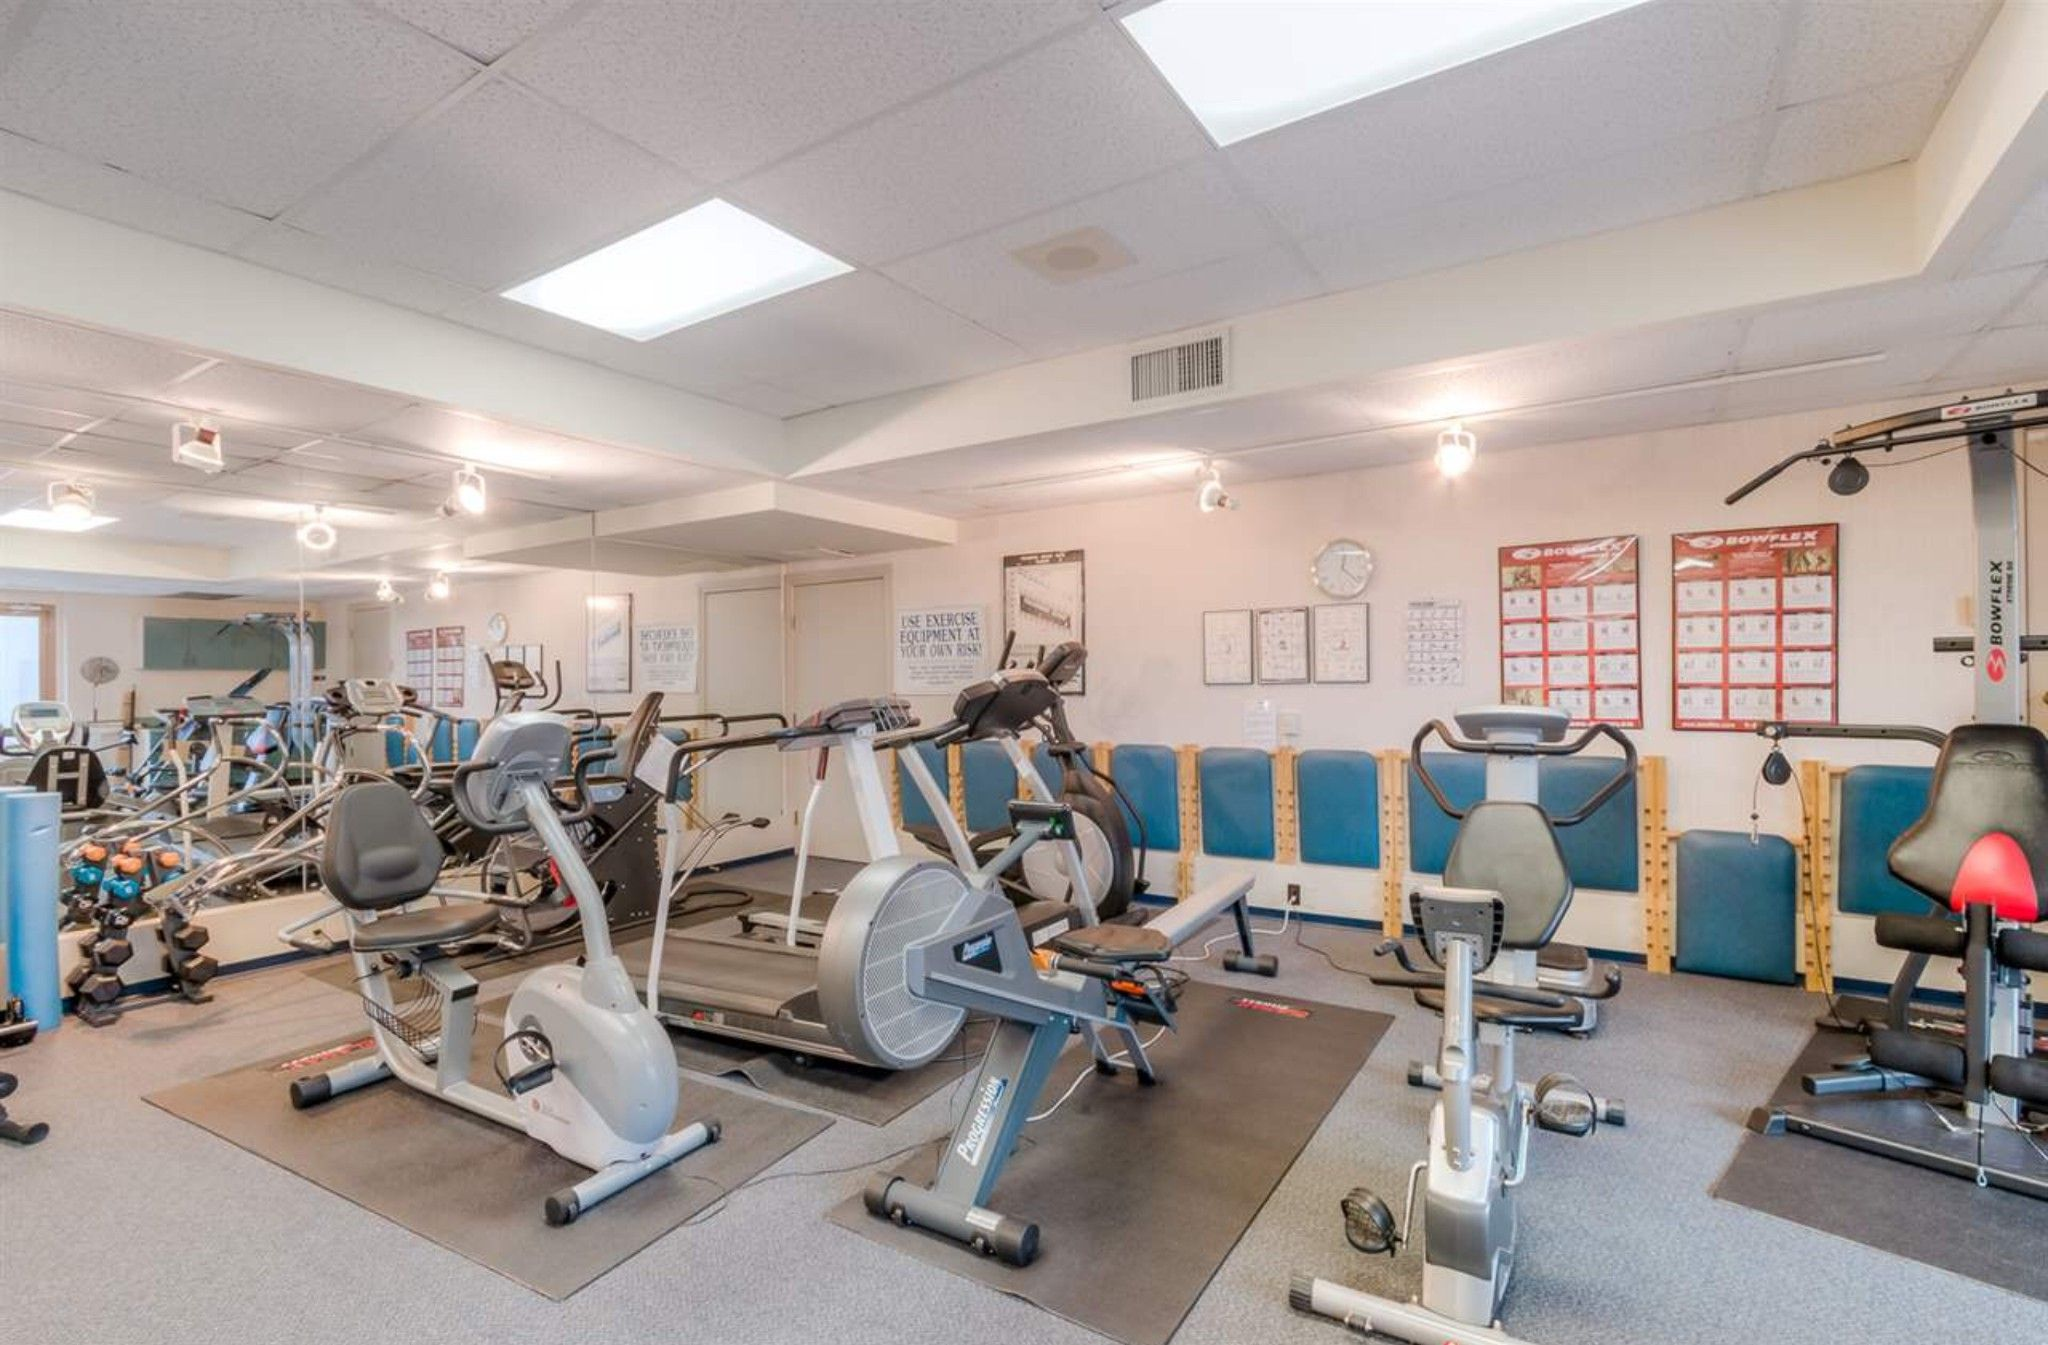 Photo 19: Photos: 410, 15111 Russell Avenue: White Rock Condo for sale (South Surrey White Rock)  : MLS®# R2152299